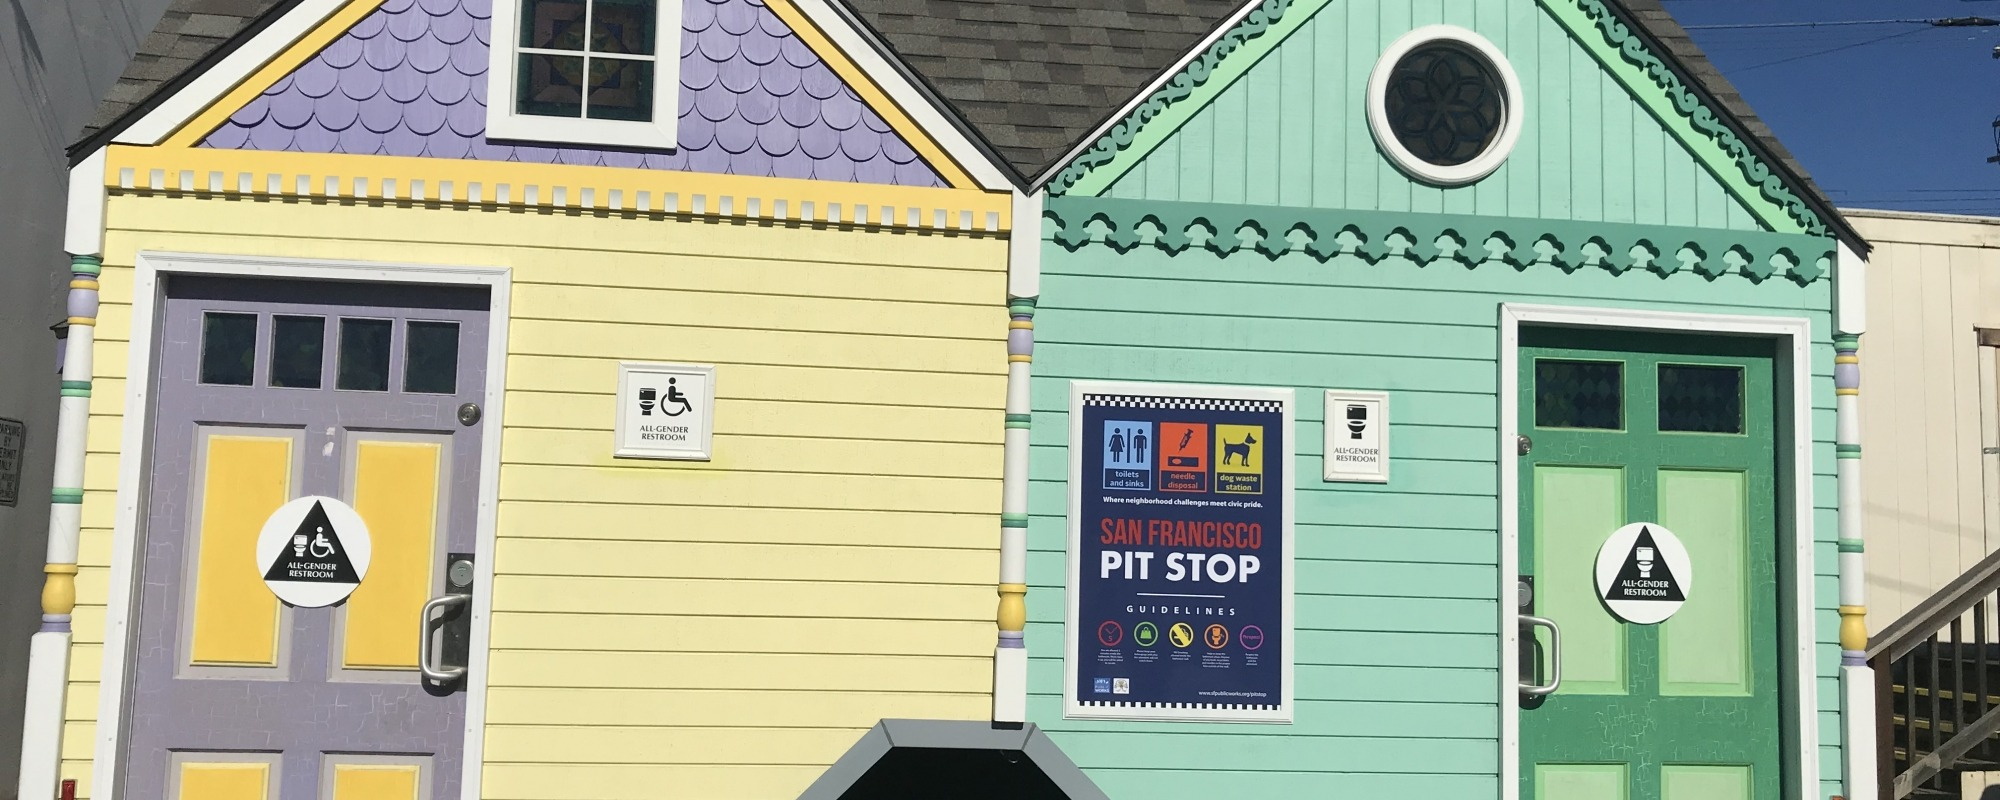 Painted Lady Pit Stop